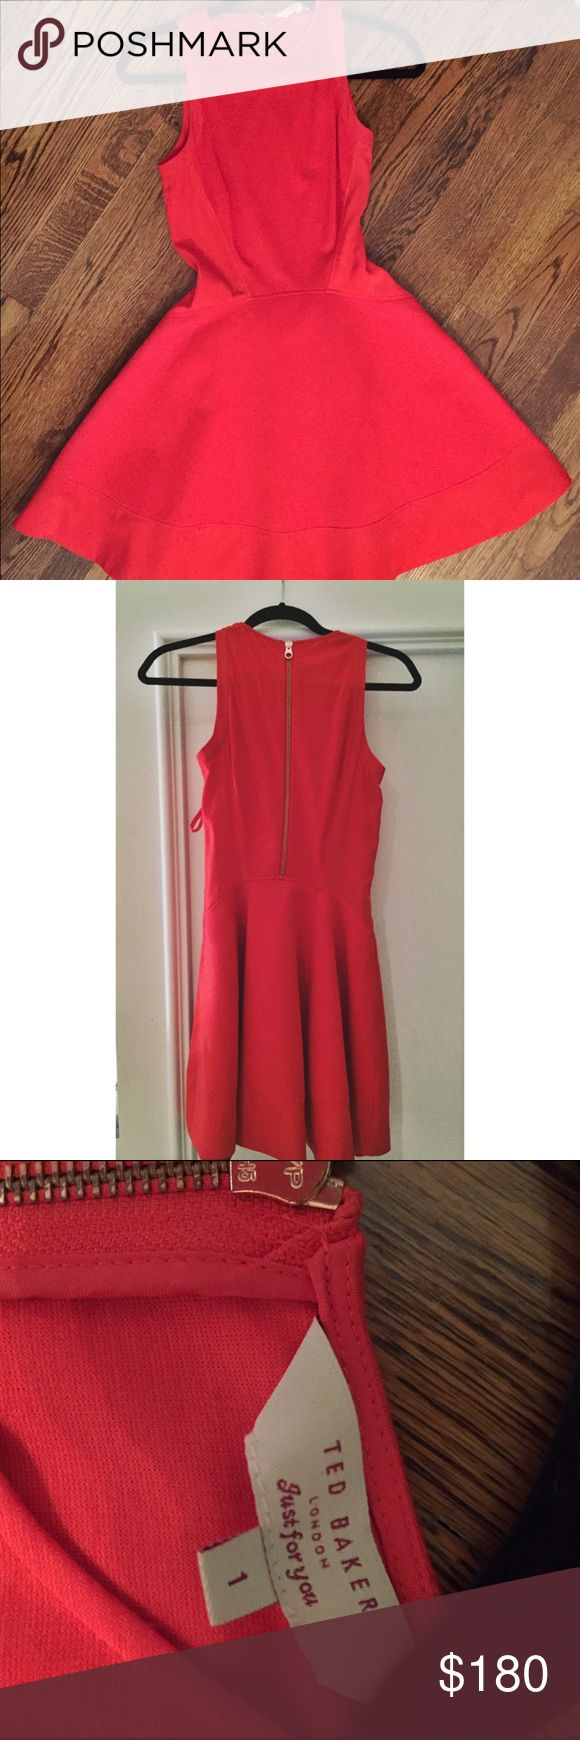 Ted Baked red cocktail dress Lightly worn. Ted Baker red dress. Very fitting and fit and flare style. Really attractive because it makes your waist look tiny!! Side zipper and gold zipper up the back. Ted Baker Dresses Mini